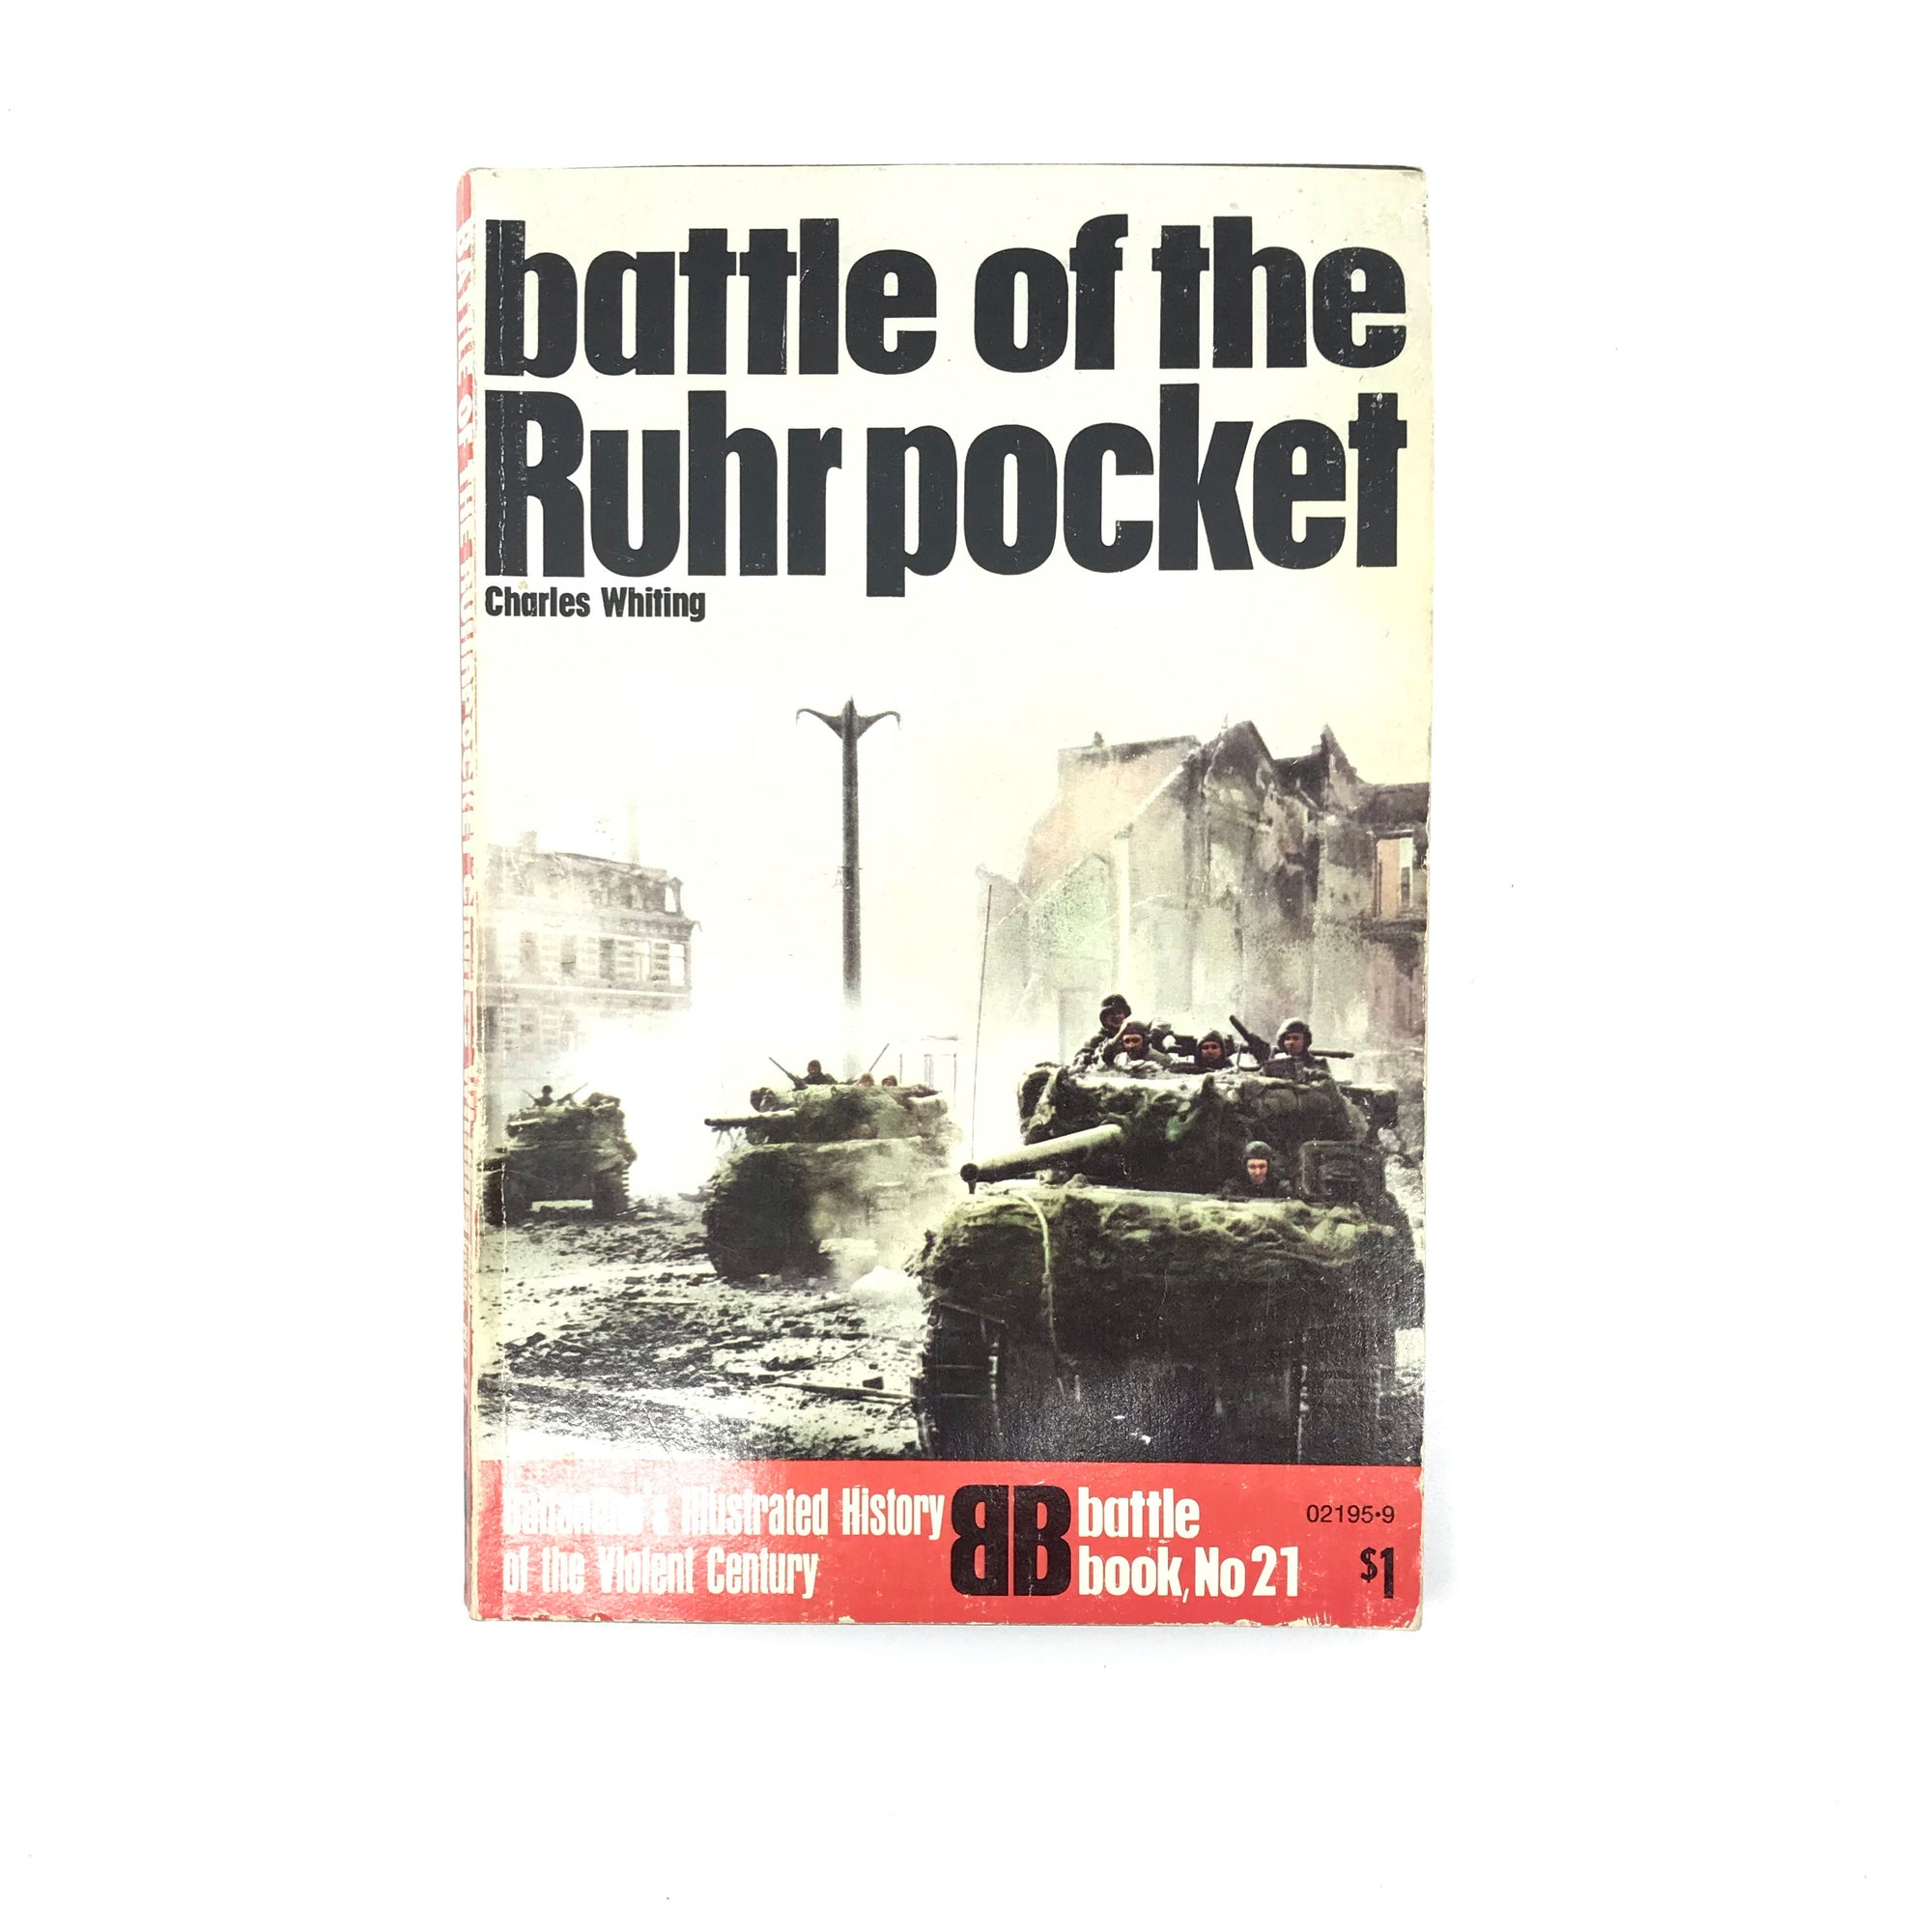 Ballantine's Illustrated History of the Violent Centruy: Battle Book No21 - Battle of the Ruhr Pocket (CharlesWhiting)